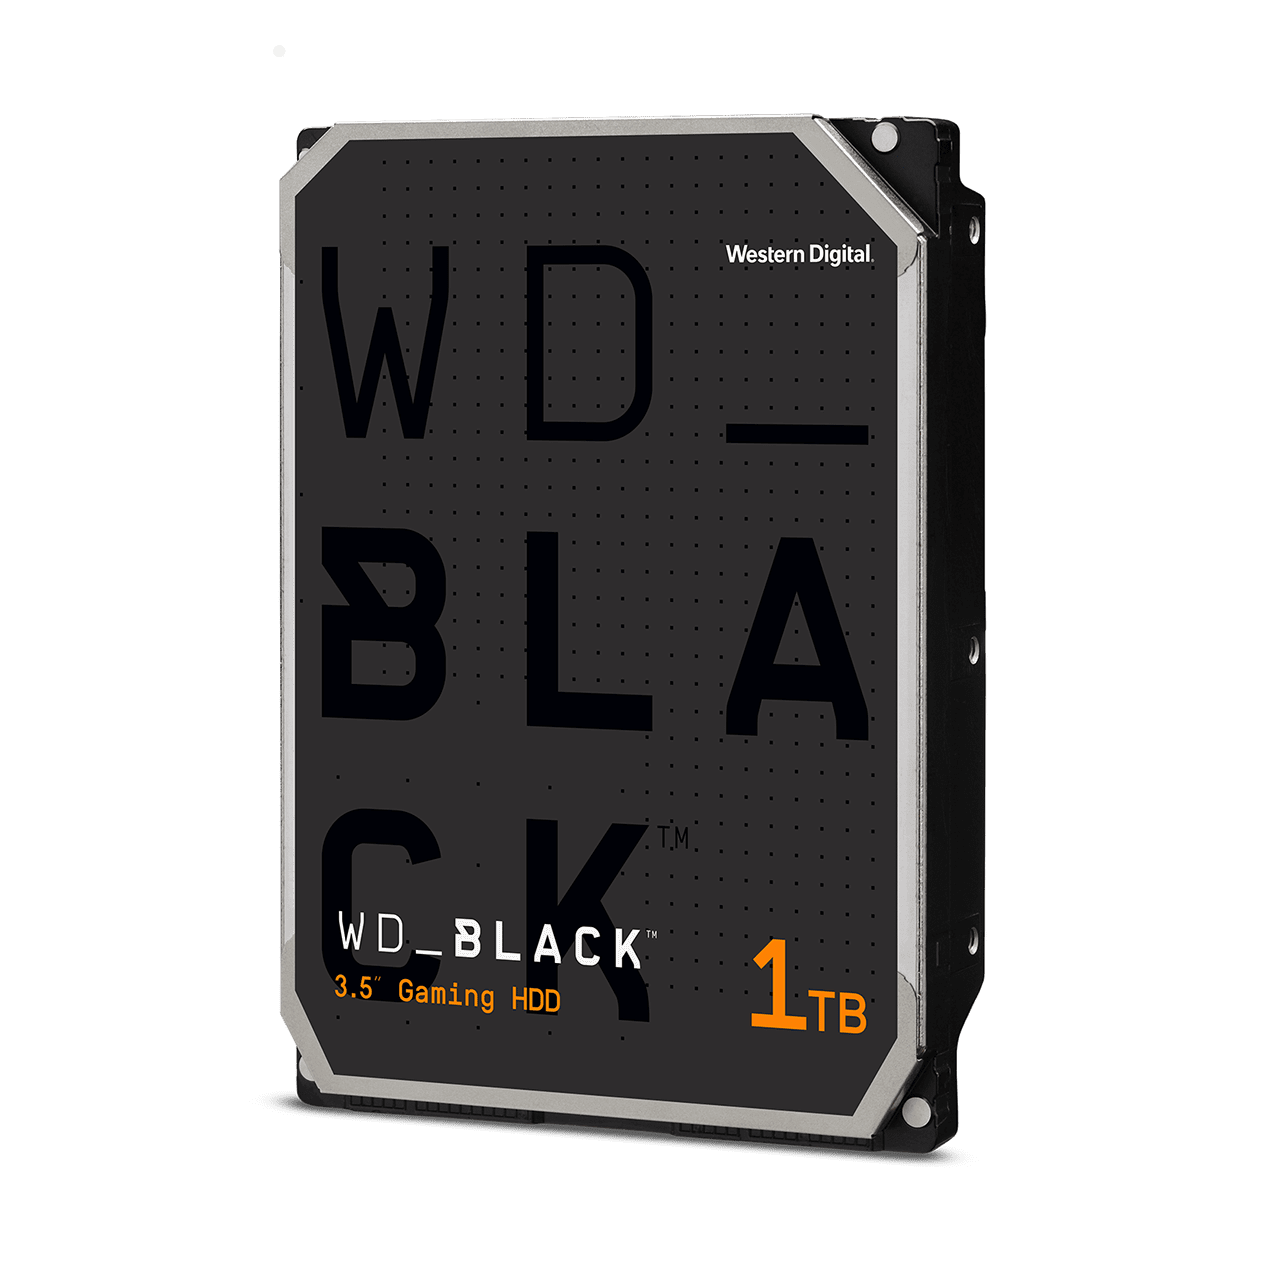 WD_BLACK™ 3.5-inch Performance Hard Drive 1TB - Image1